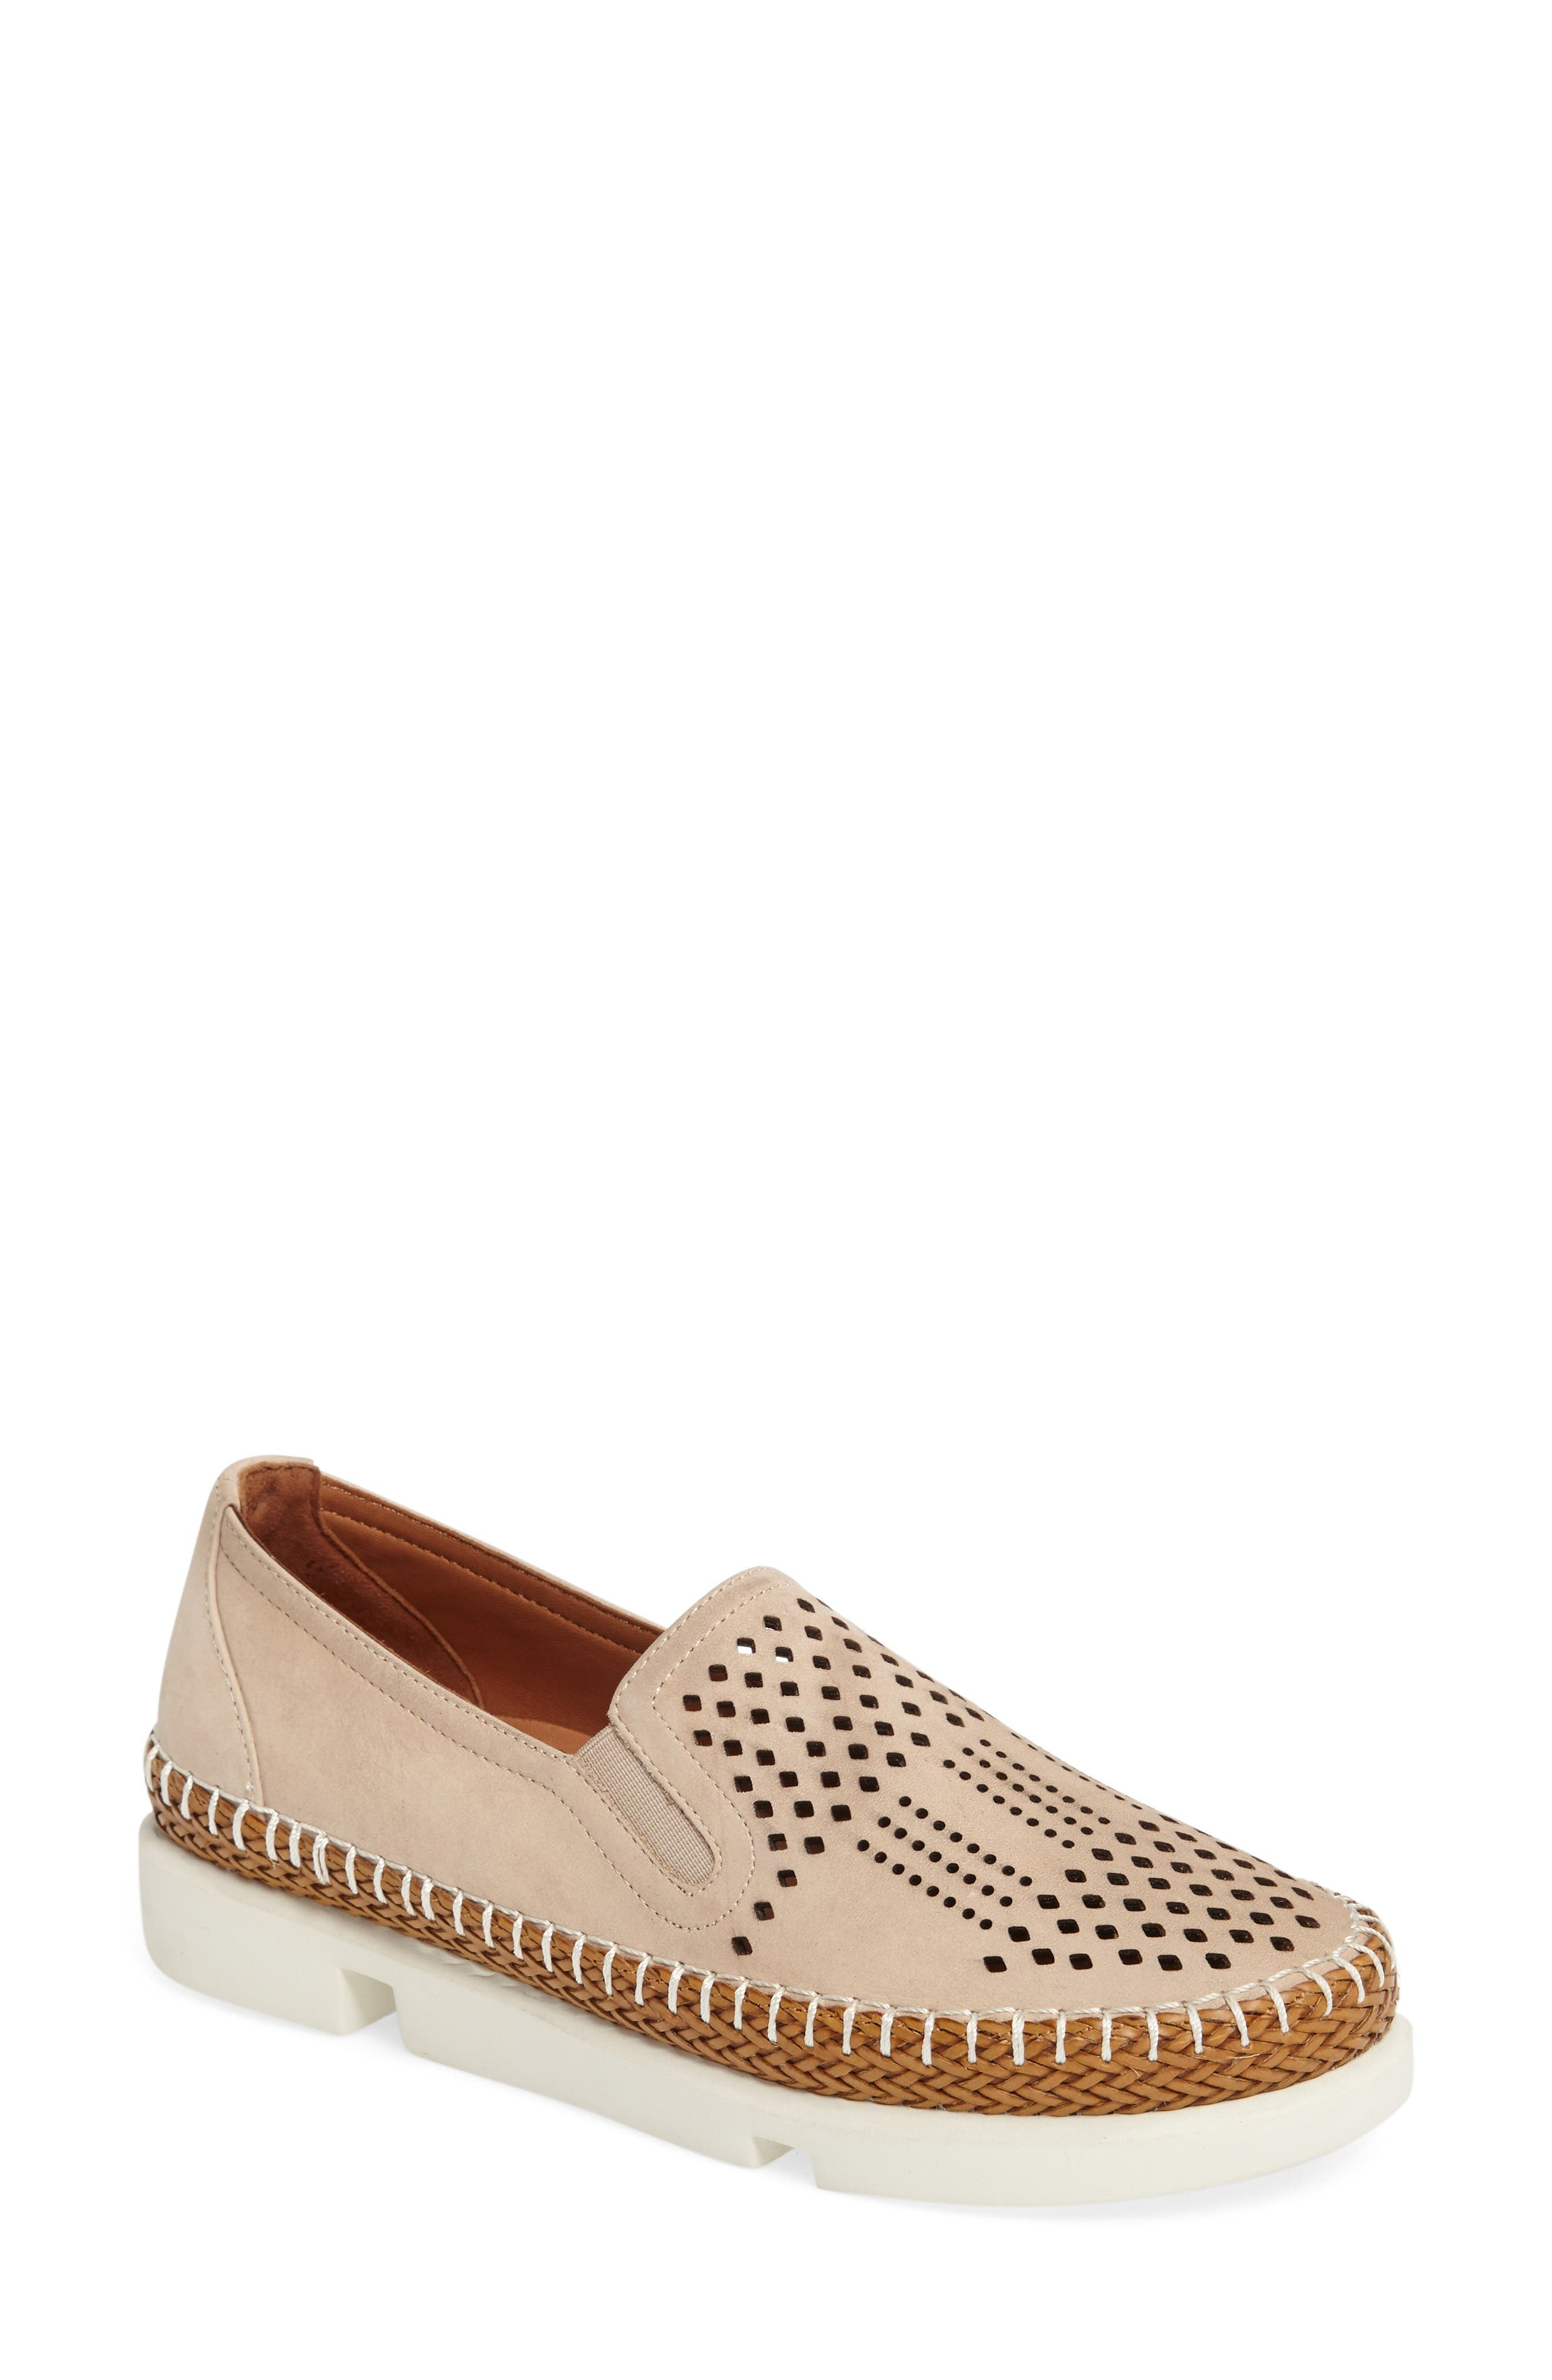 Alternate Image 1 Selected - L'Amour des Pieds Stazzema Platform Slip-On (Women)